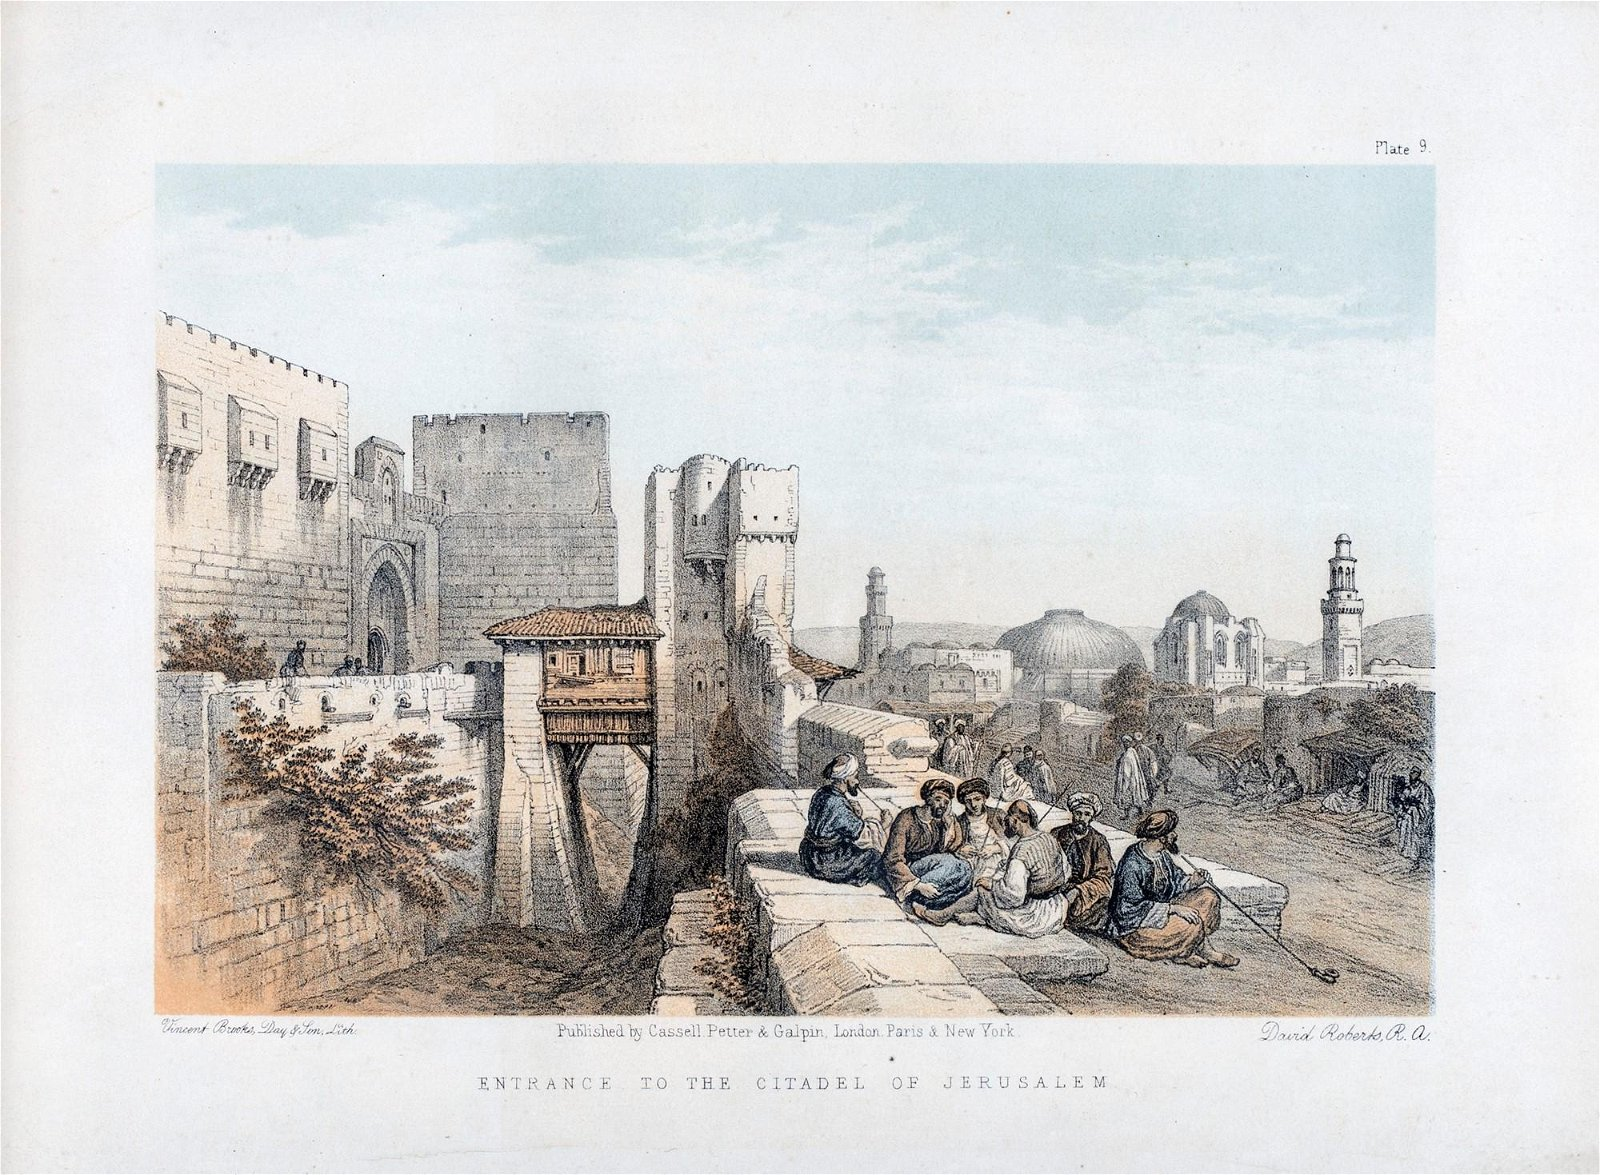 The entrance to the citadel of Jerusalem by David